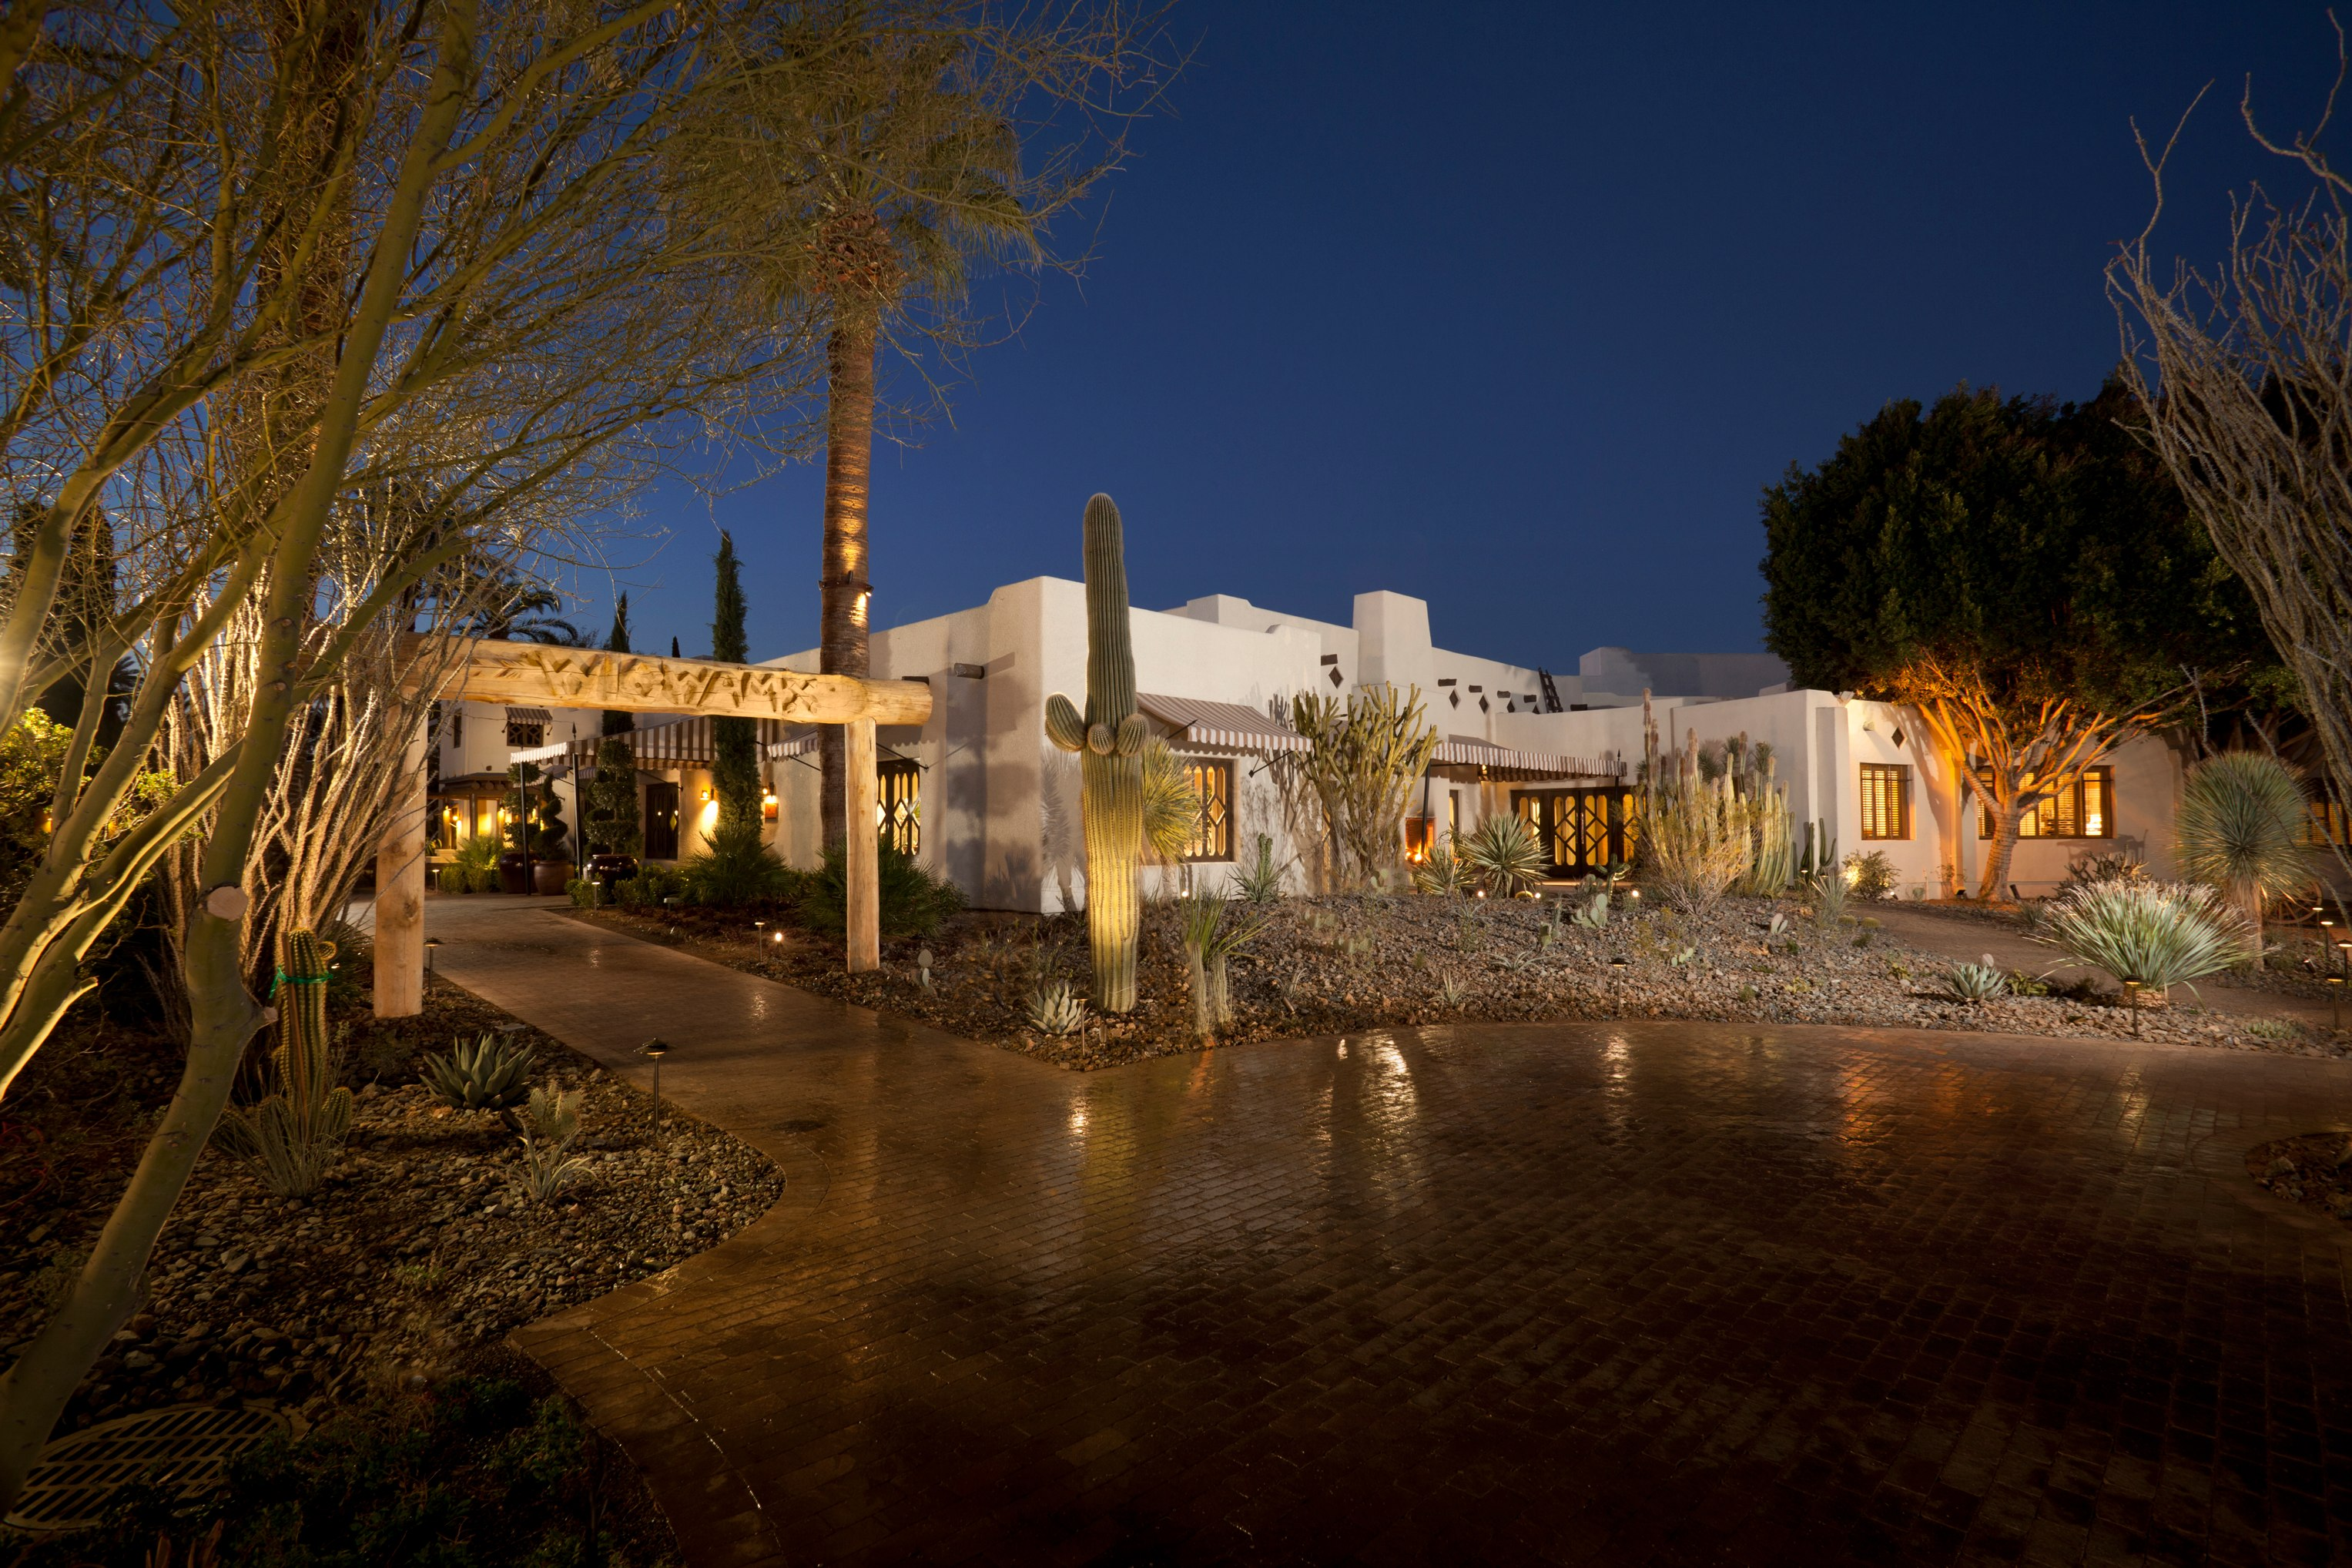 Santa Fe Style Homes Southwest Adobe Style The Wigwam Resort Amp Spa Phx